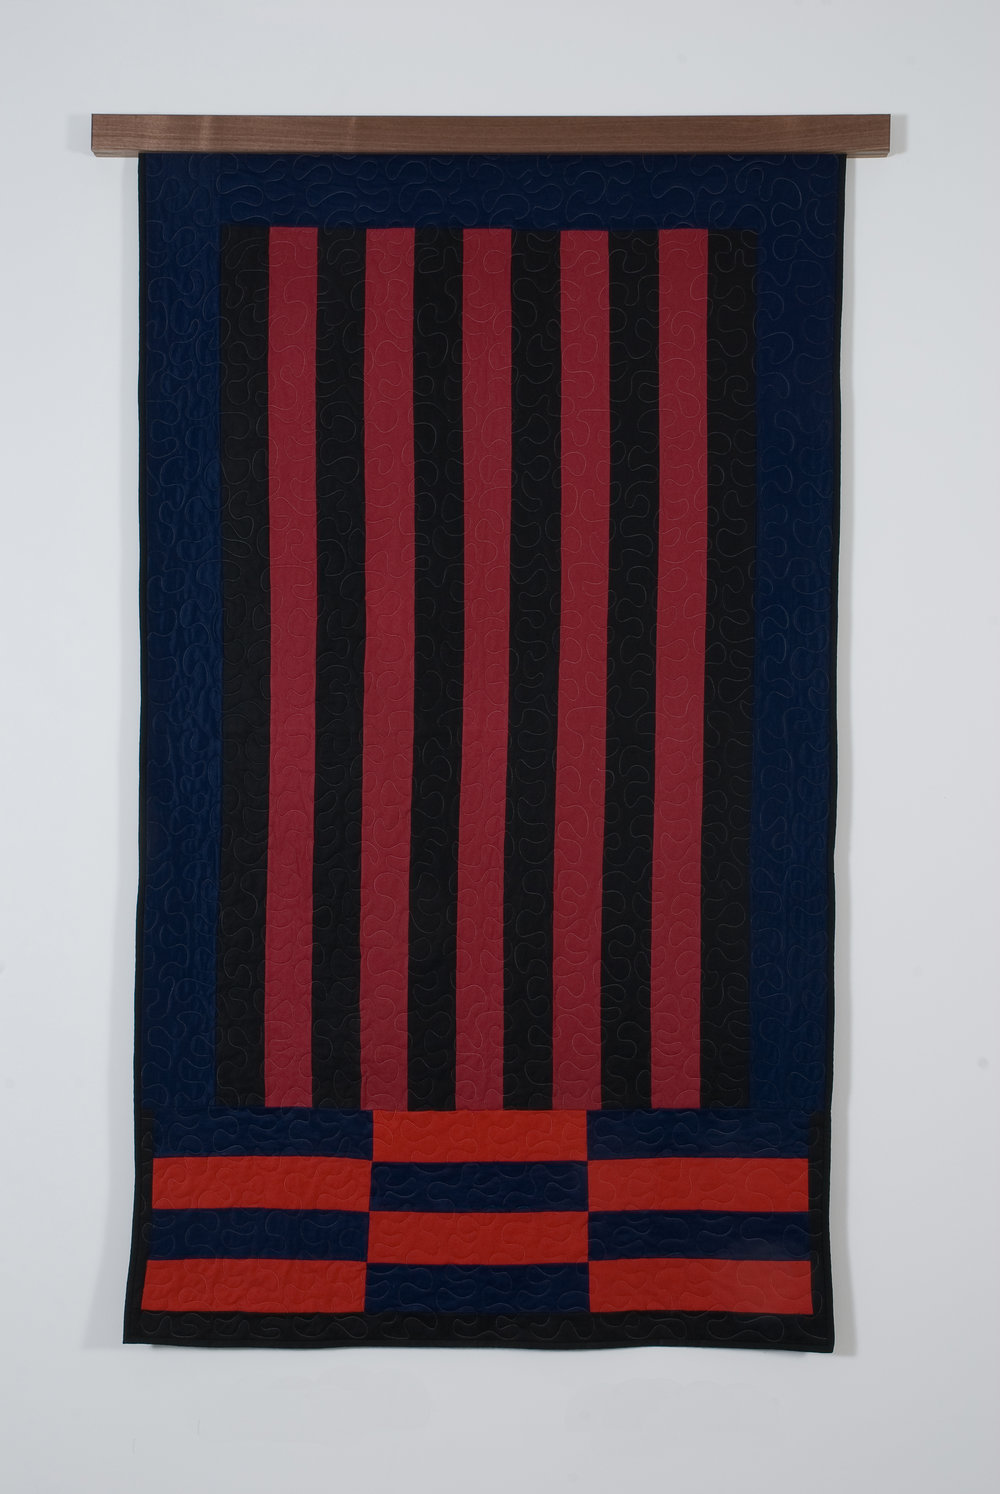 Bricks and Bars II, 2008 felted wool and cotton 207 x 122 cm - 81 1/2 x 48 inches